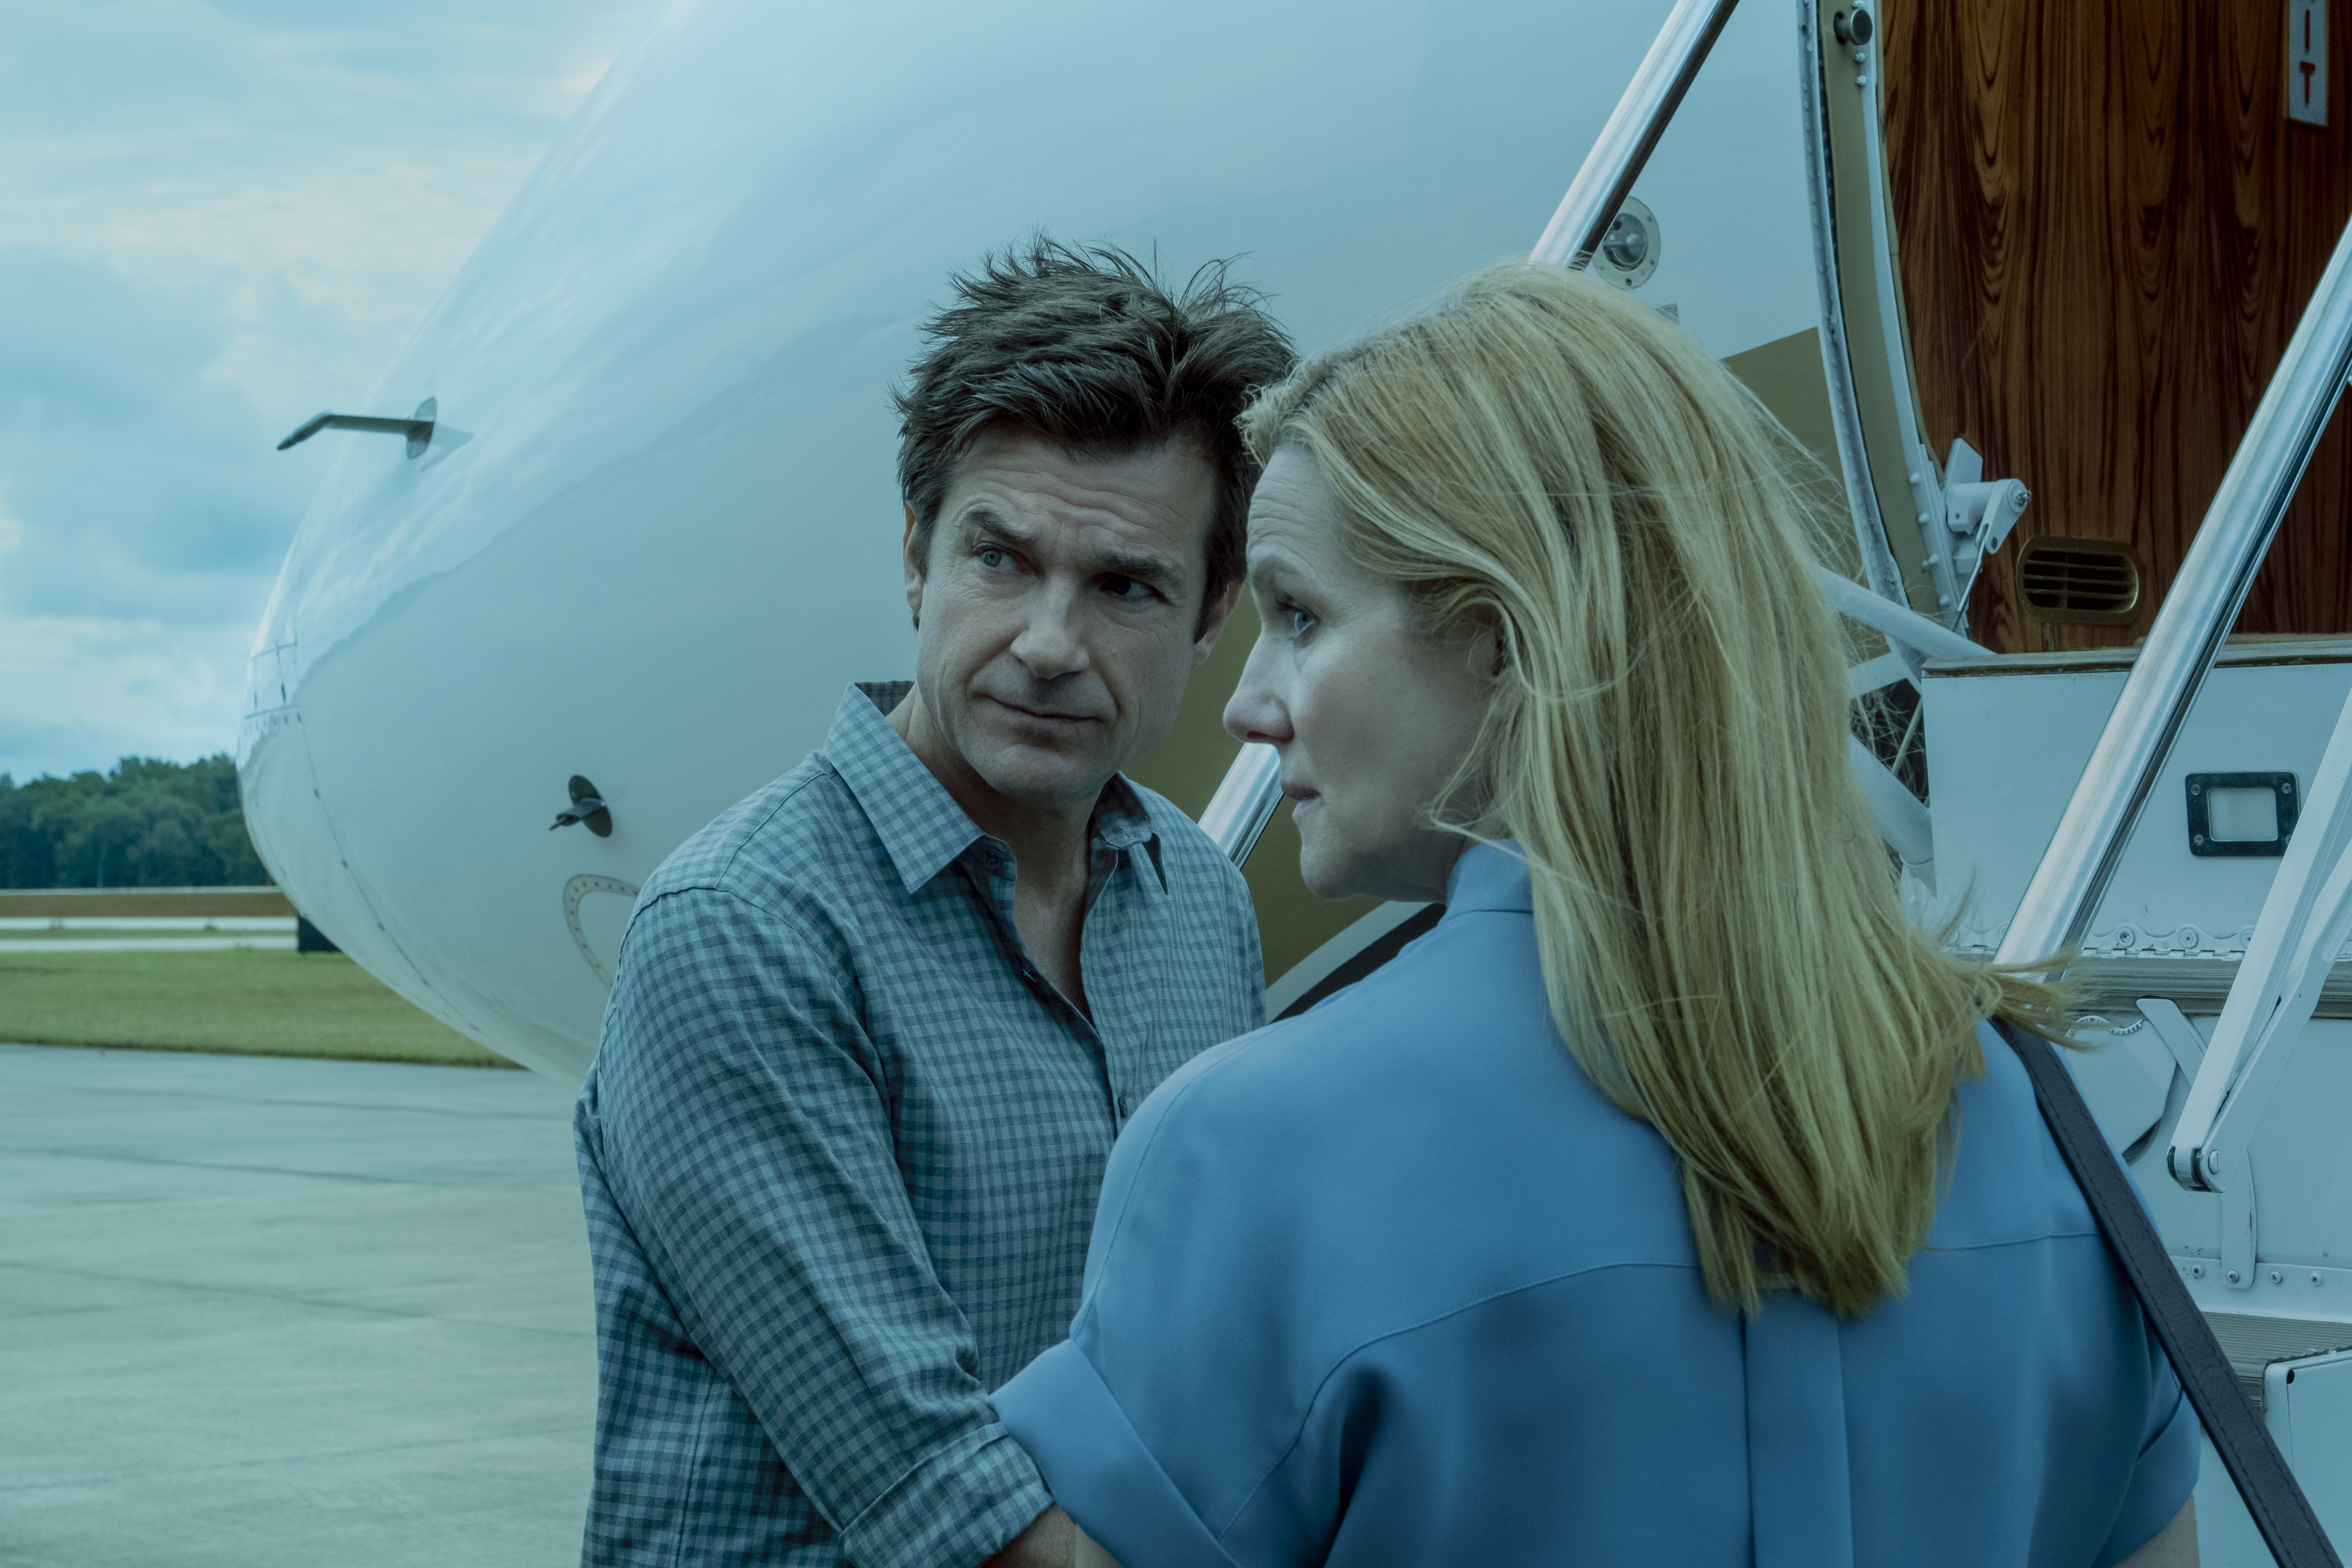 Marty and Wendy Byrde (Jason Bateman and Laura Linney) board an airplane in a still from Netflix's Ozark.